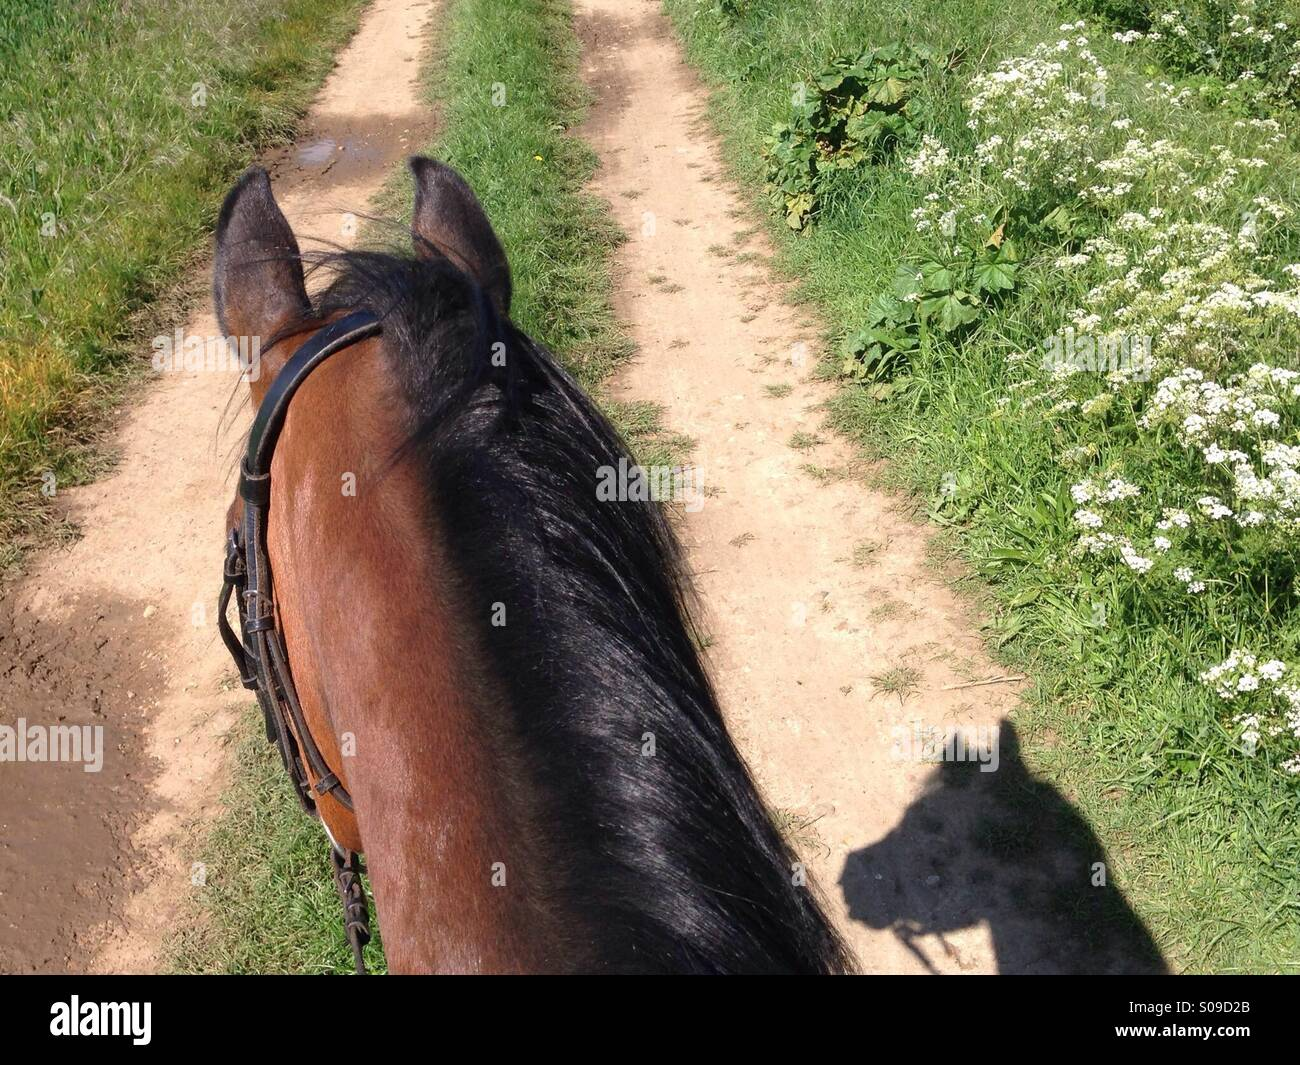 Horse riding in summertime - Stock Image